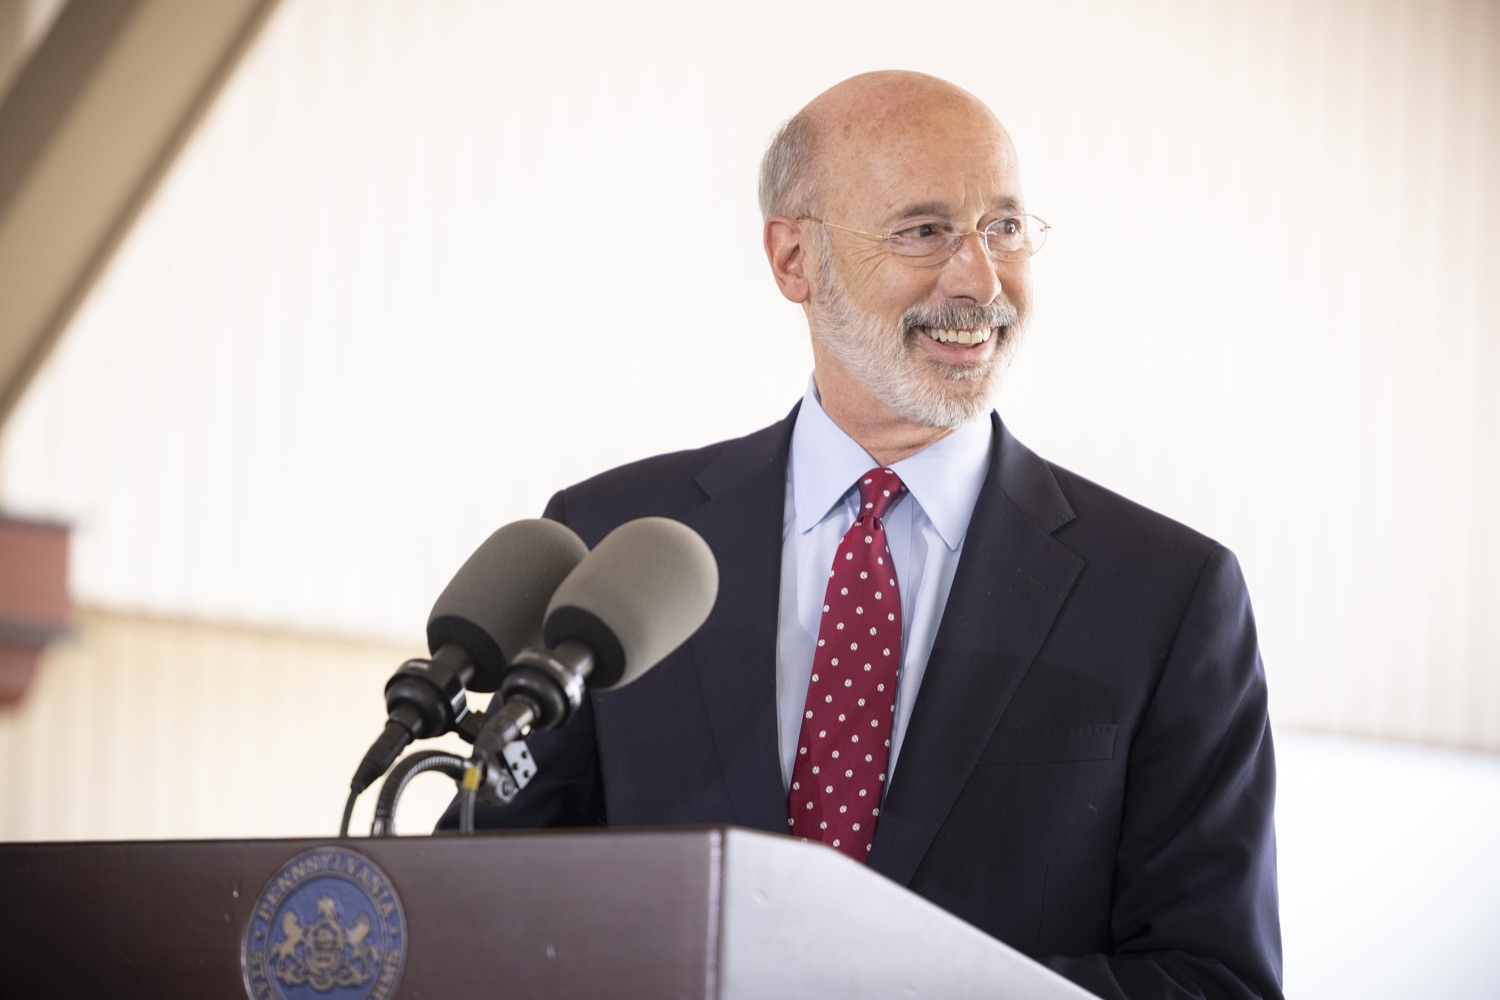 """<a href=""""https://filesource.wostreaming.net/commonwealthofpa/photo/18932_gov_chirp_dz_019.jpg"""" target=""""_blank"""">⇣Download Photo<br></a>Pennsylvania Governor Tom Wolf speaking with the press.  Governor Tom Wolf today joined the Pennsylvania Department of Community and Economic Development, Bucks County Commissioners, Bristol Borough Mayor Joseph Saxton, local lawmakers, Bucks County Economic Development Corporation, Visit Bucks County, the Bucks County Redevelopment Authority, and the owners of Itri Wood Fired to highlight the $7 million in grant funding provided to Bucks County restaurants through the COVID-19 Hospitality Industry Recovery Program(CHIRP).  JULY 16, 2021 - BRISTOL, PA"""